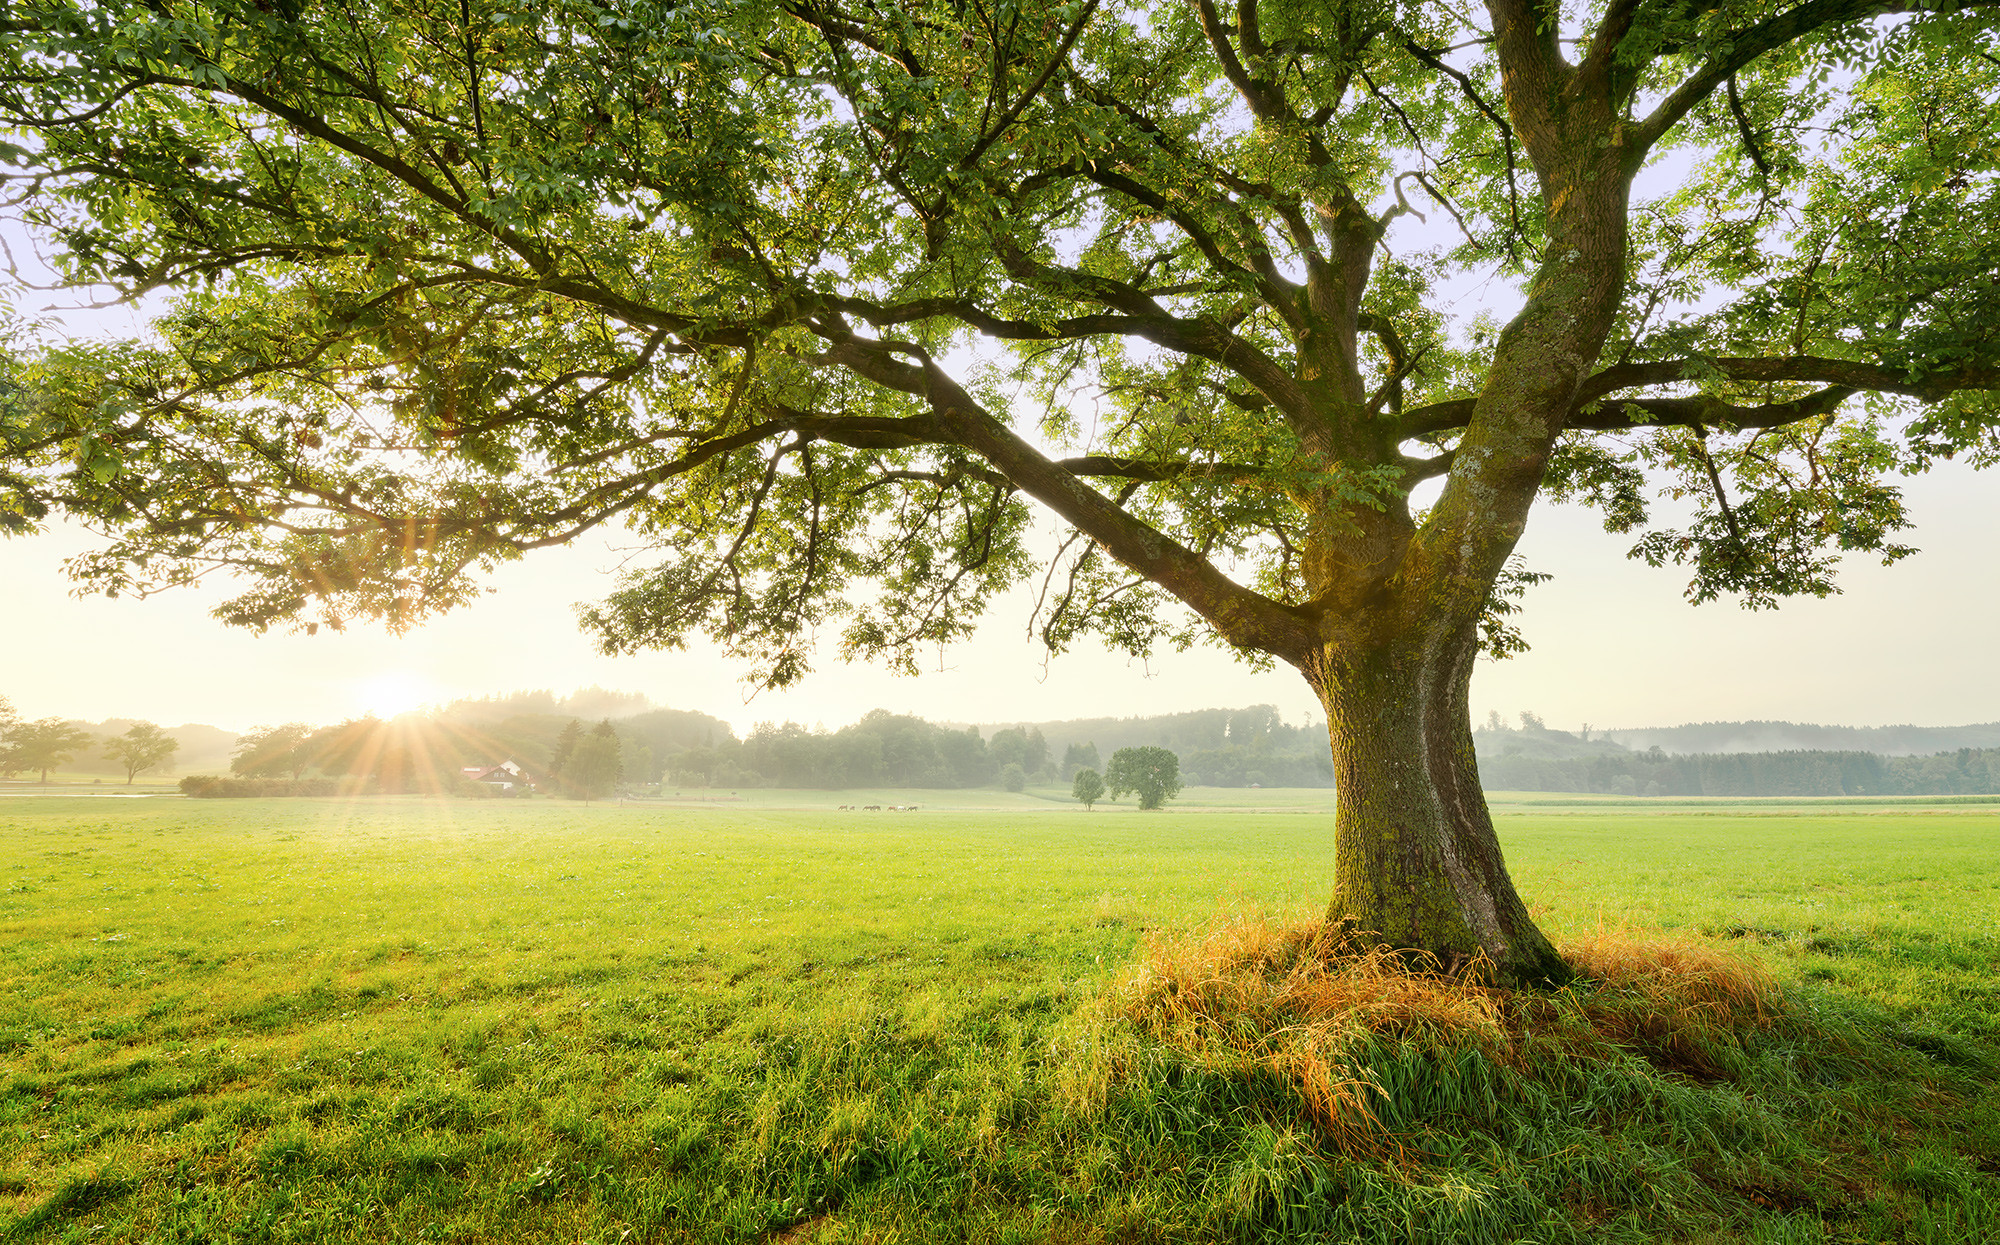 Tree wallpaper digital picture free worldwide email delivery Photo